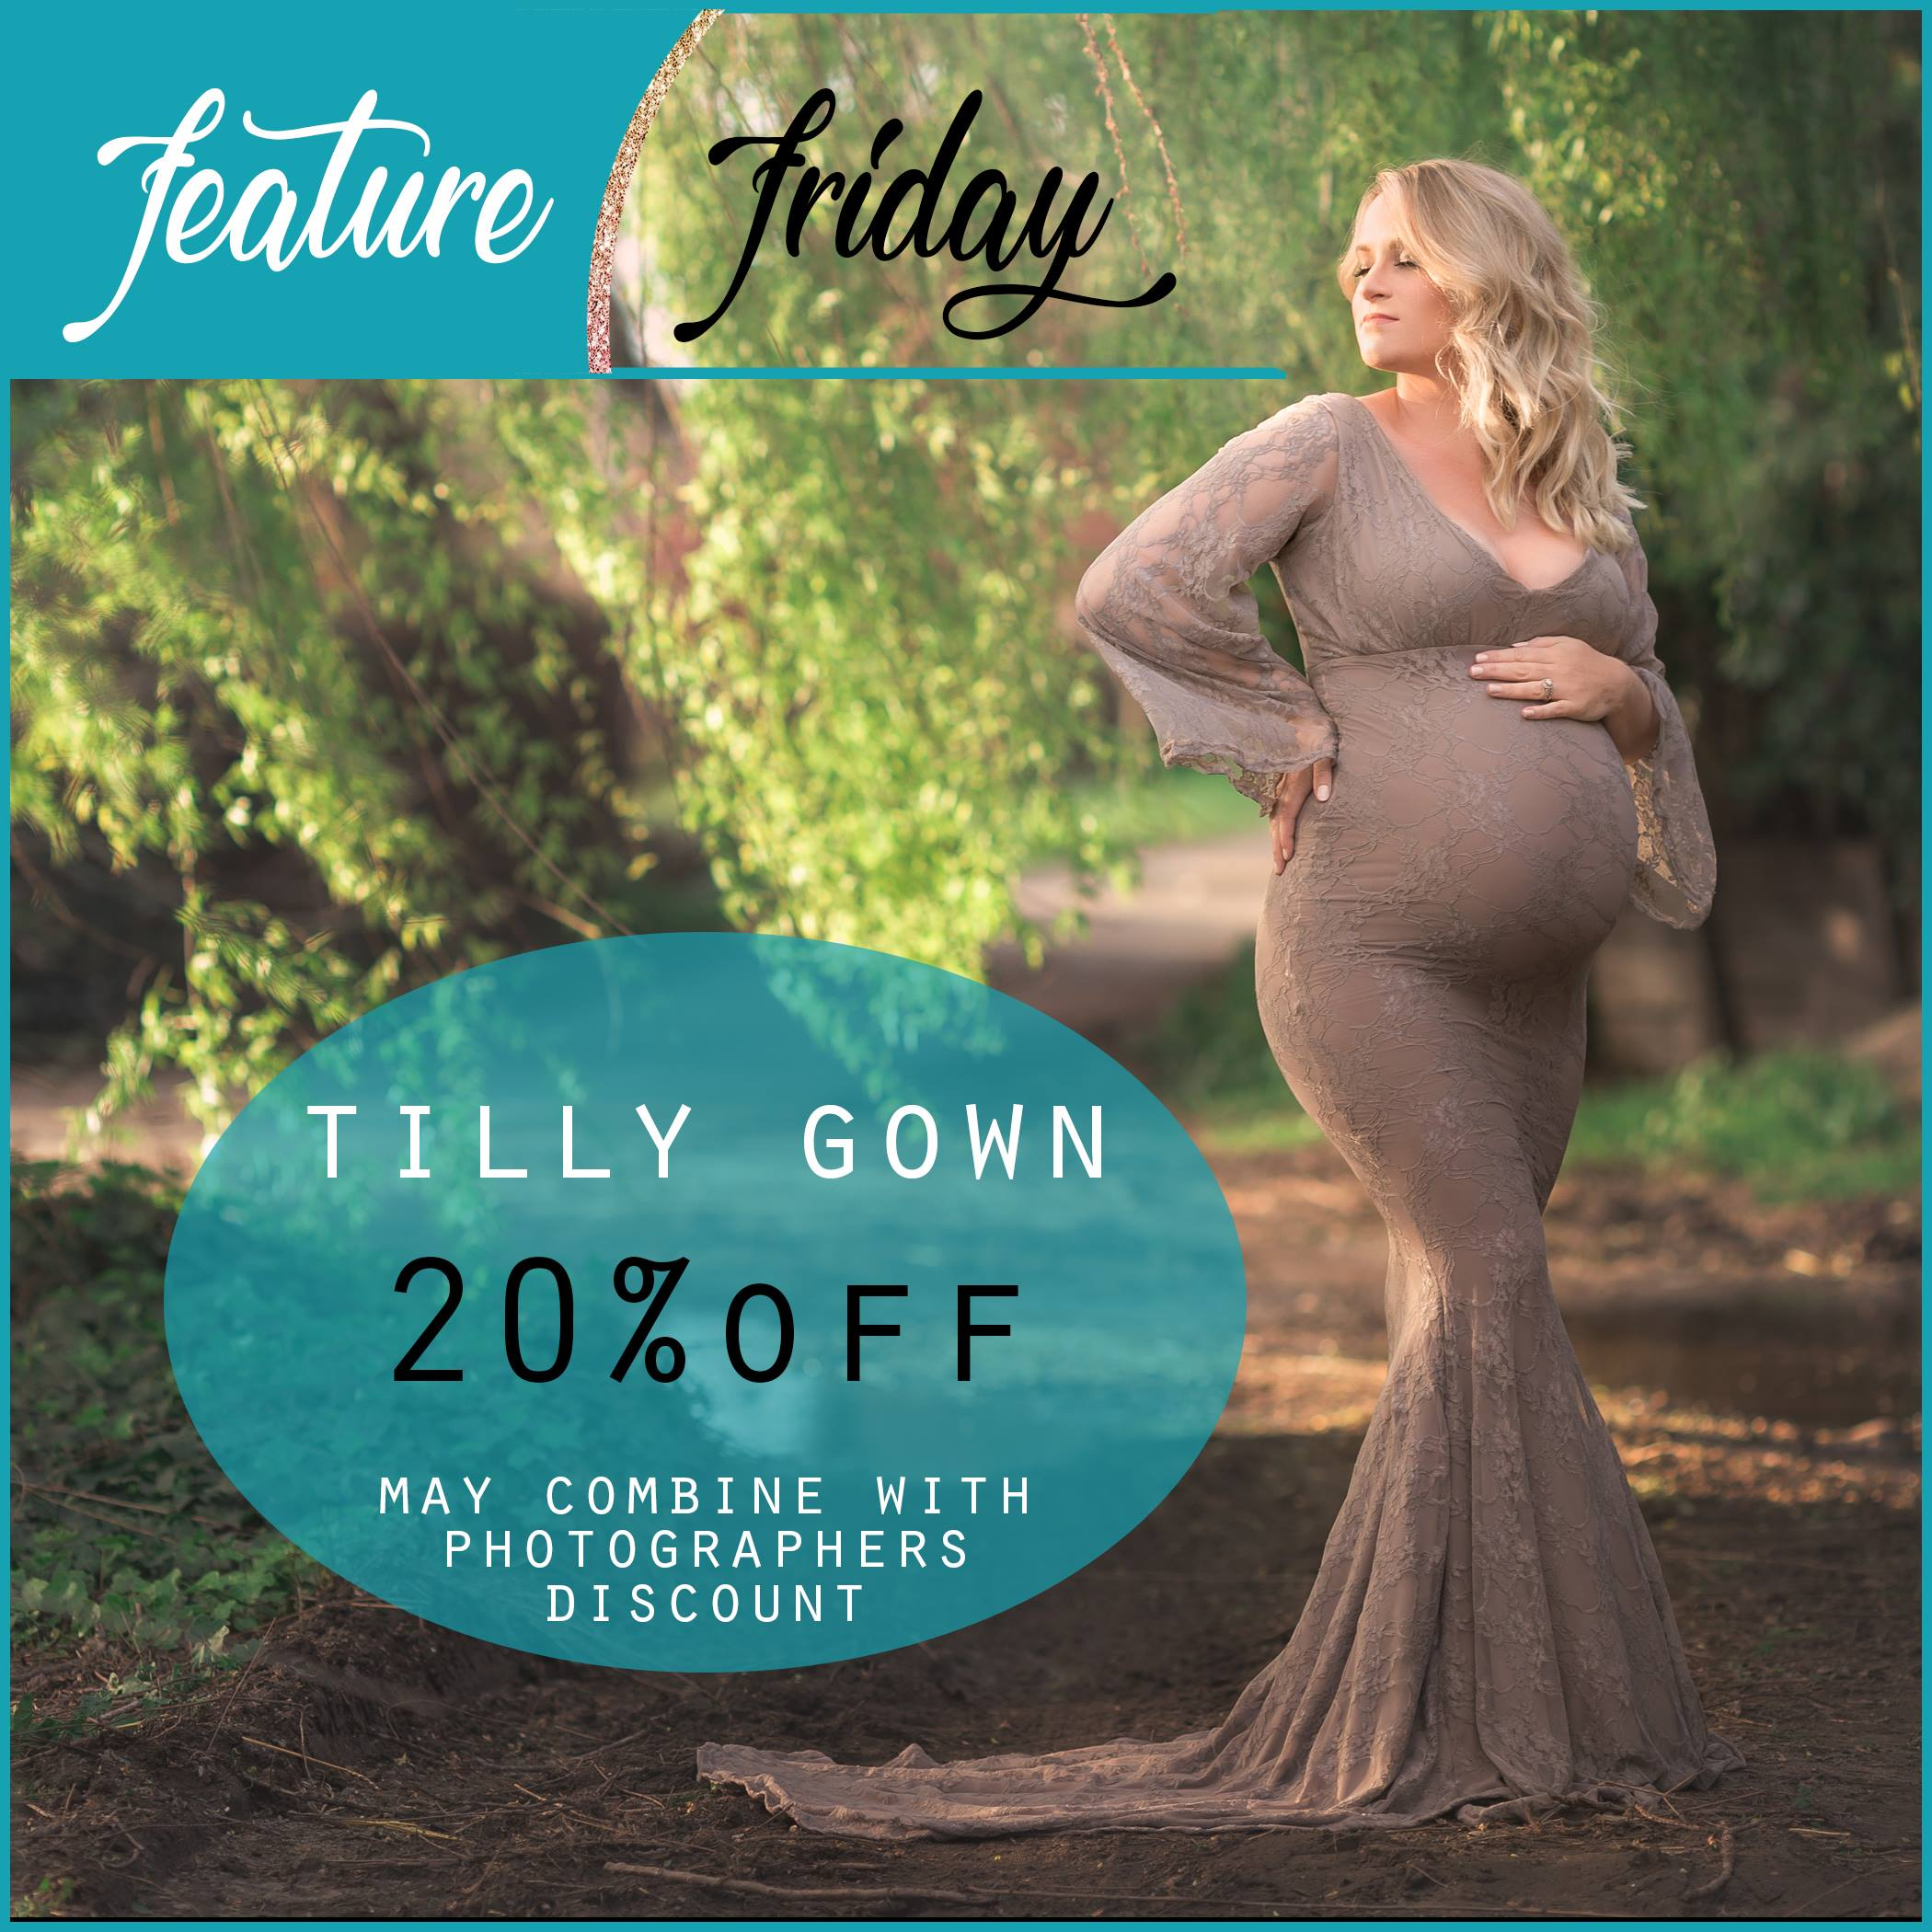 Maternity gown sale, maternity gown photography, maternity dress photoshoot, photography prop, baby shower dress